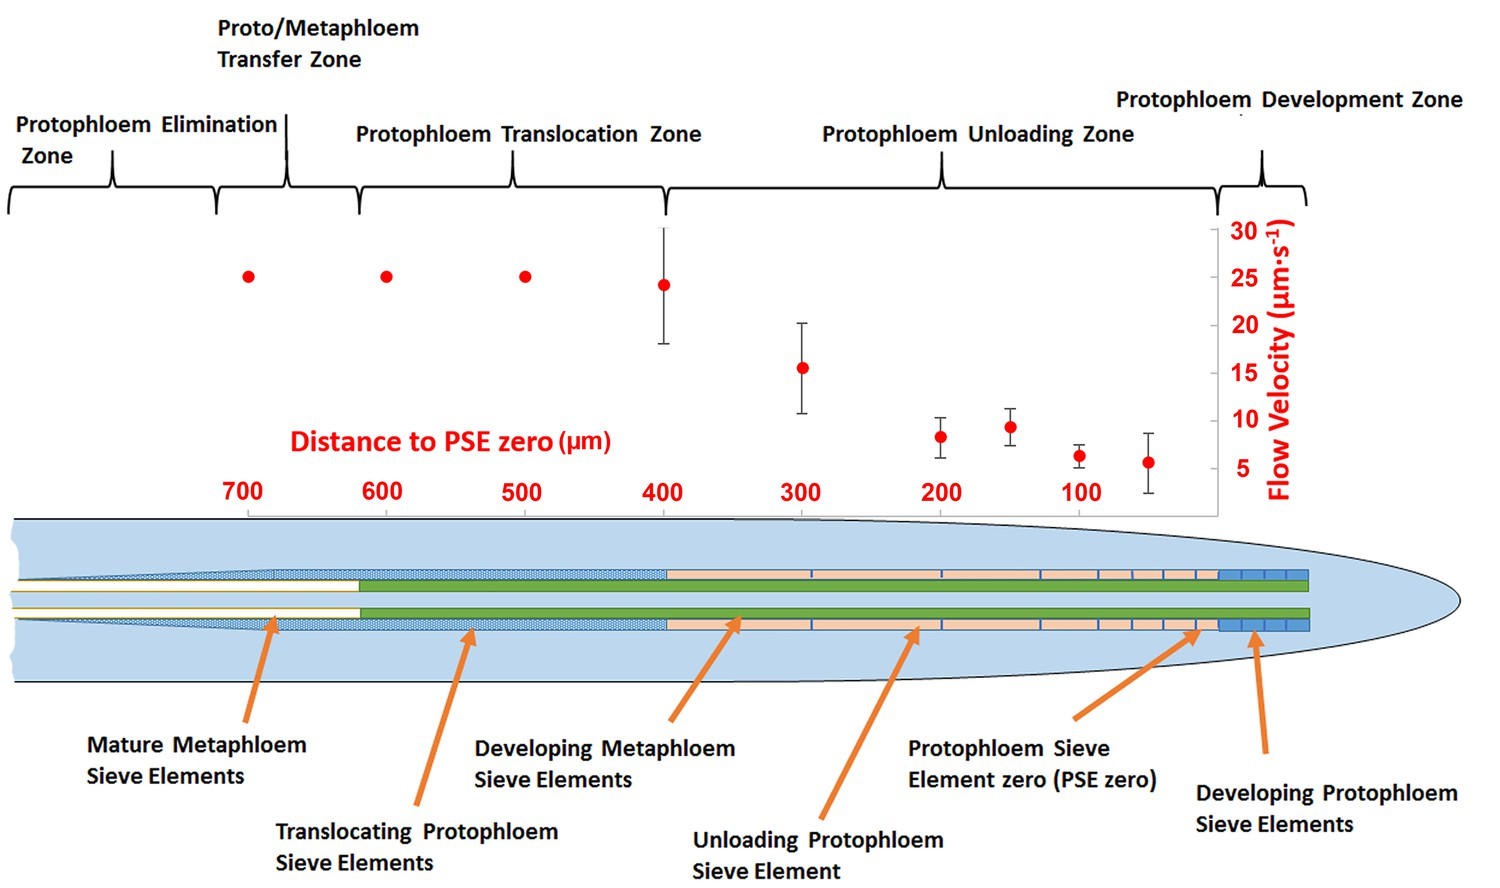 Phloem Unloading In Arabidopsis Roots Is Convective And Regulated By 2006 Pace Arrow Slide Out Wiring Diagram Schematic Illustrating The Organization Of Cells Specific Zones Root Tip